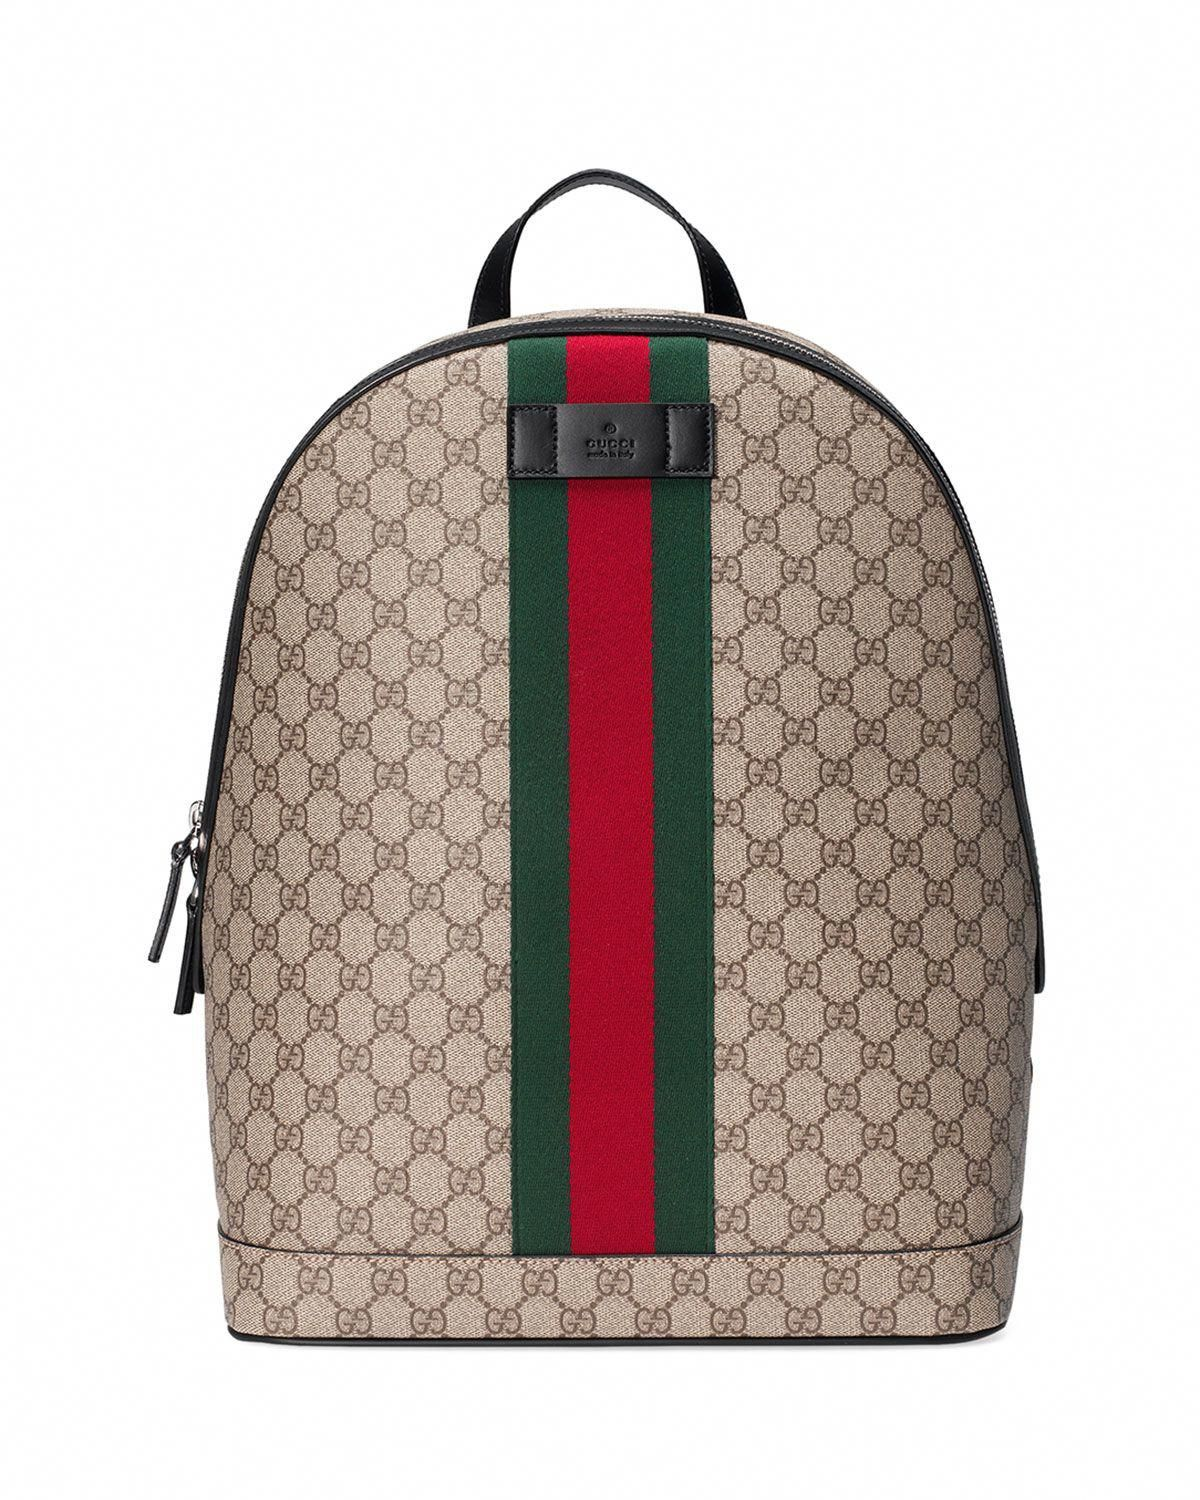 329cb80e9d6 GUCCI MEN S GG SUPREME WEB BACKPACK WITH LAPTOP SLEEVE